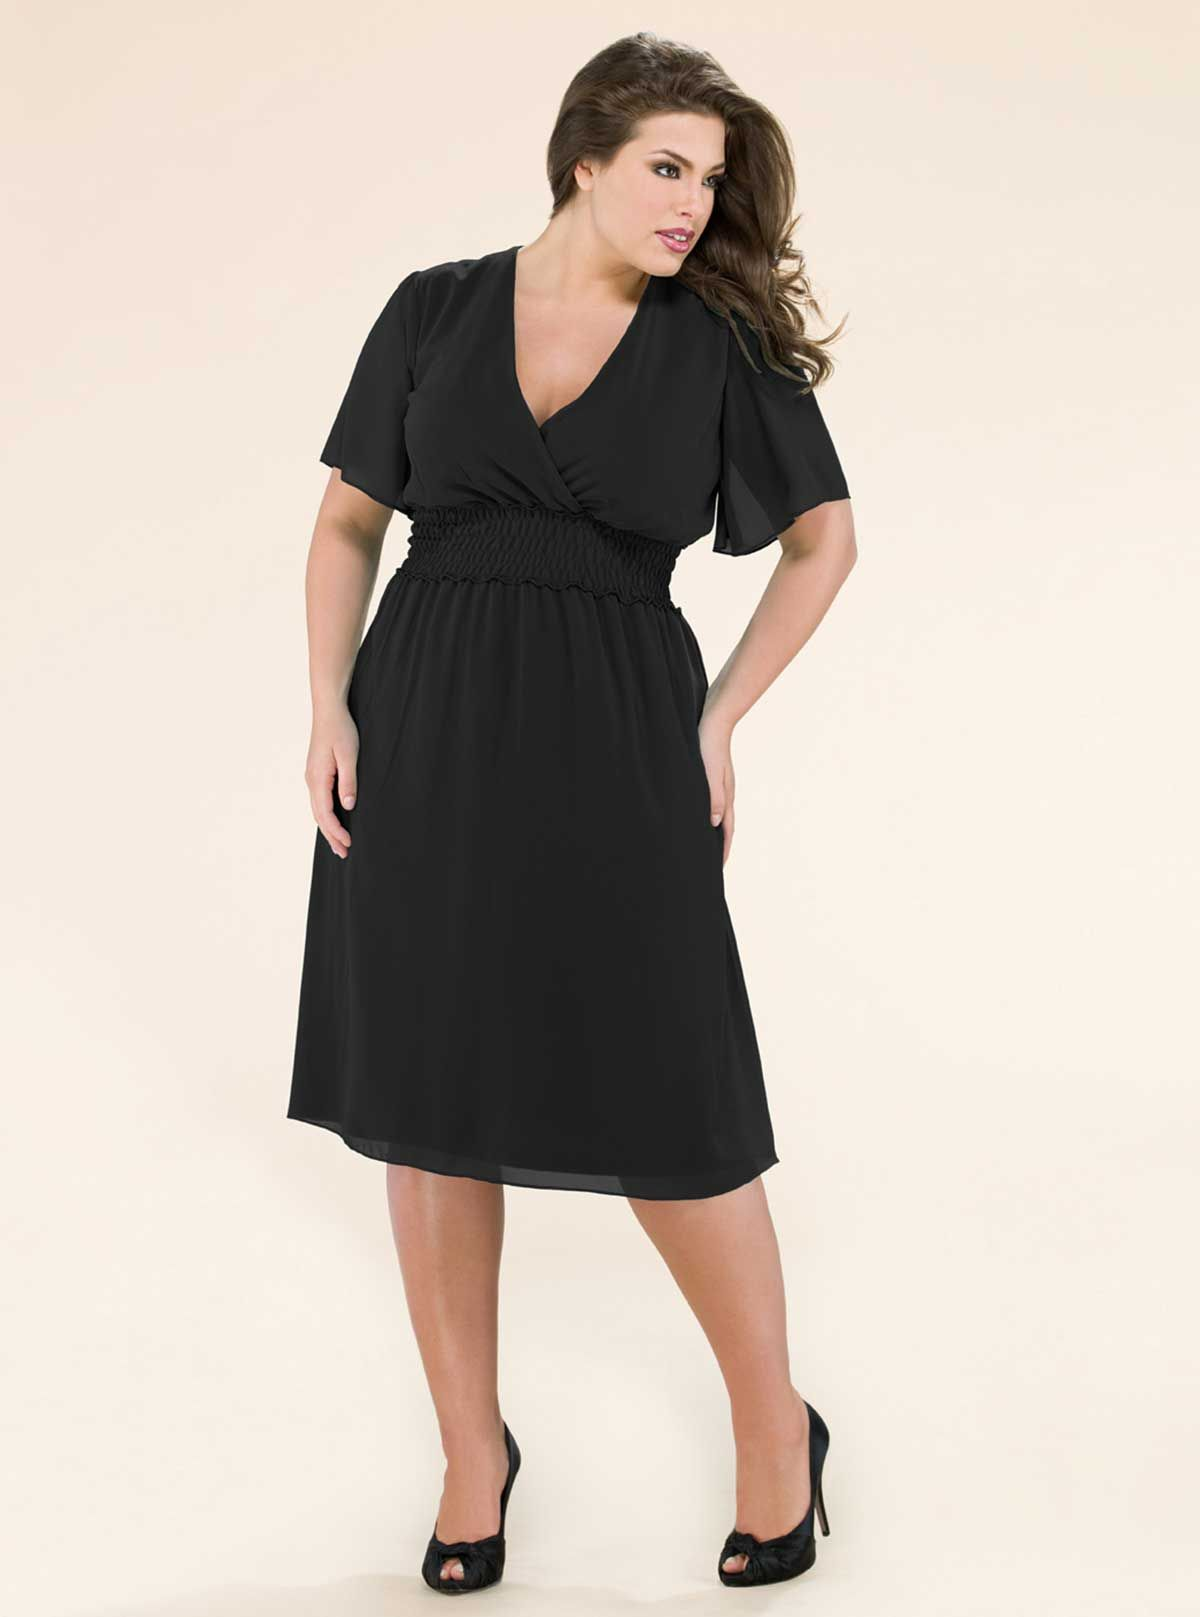 The Difficulty In Finding The Plus Size Cocktail Party Dress